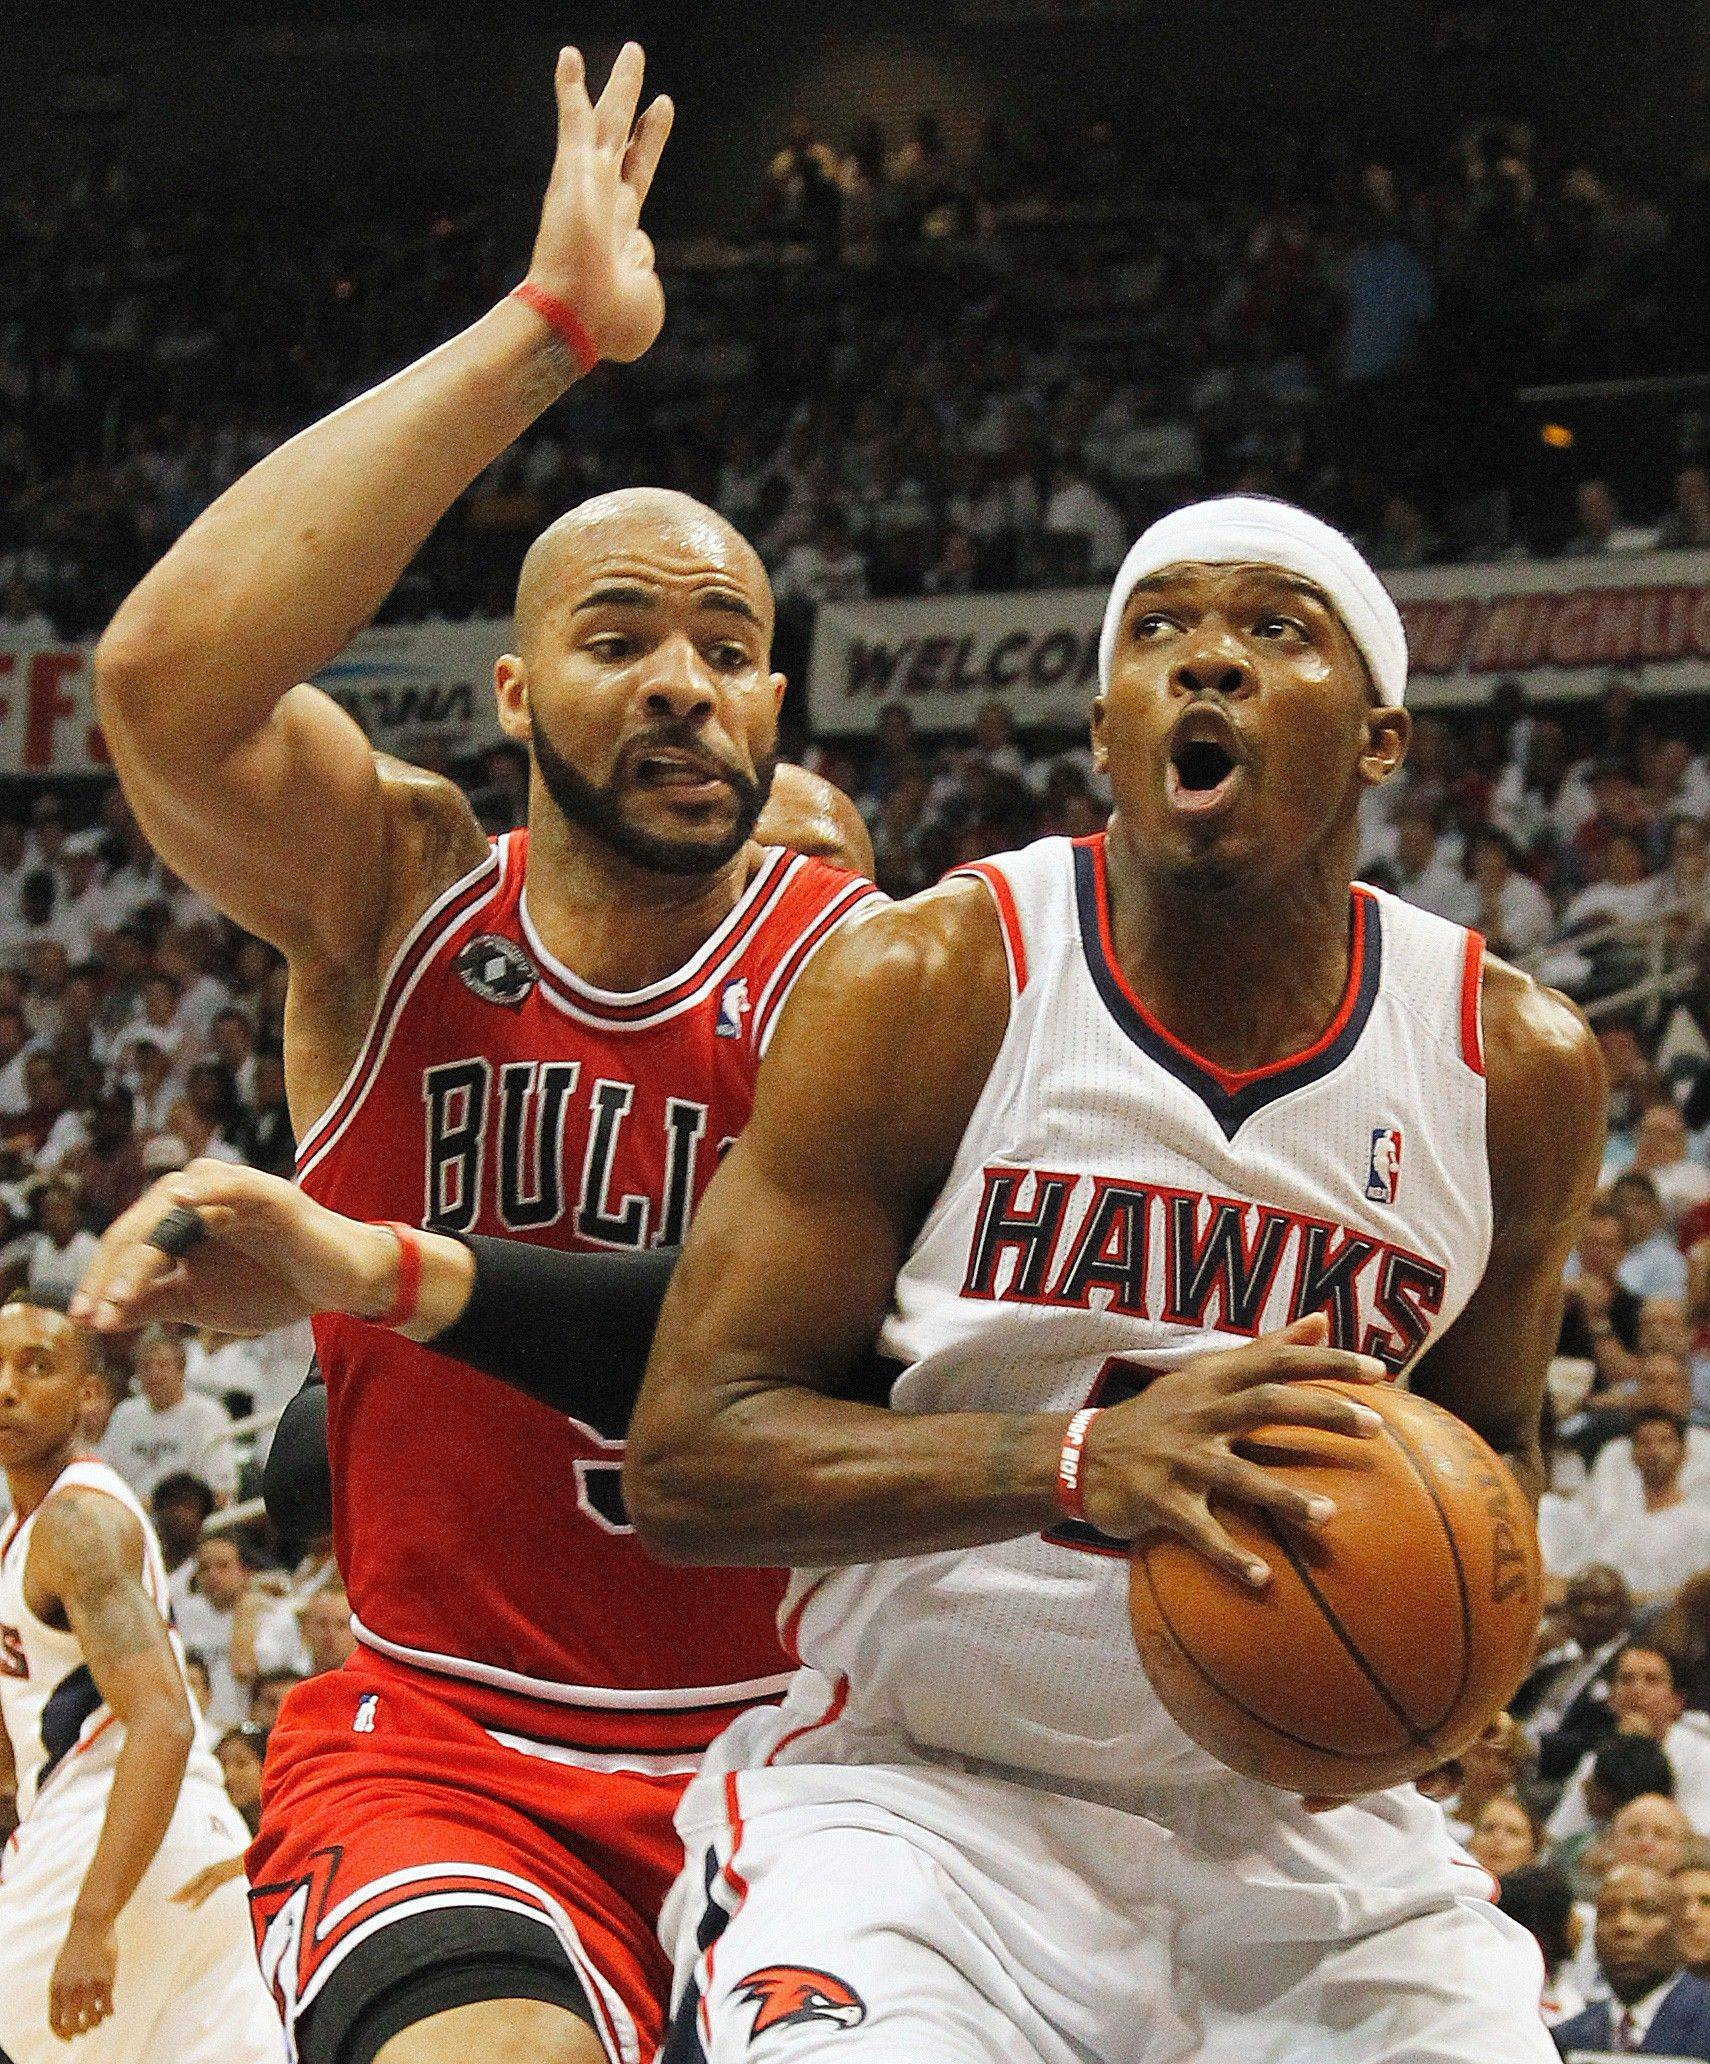 Bulls guard Keith Bogans defends Hawks guard Joe Johnson in Game 6 of the NBA Eastern Conference semifinal playoff series Thursday.